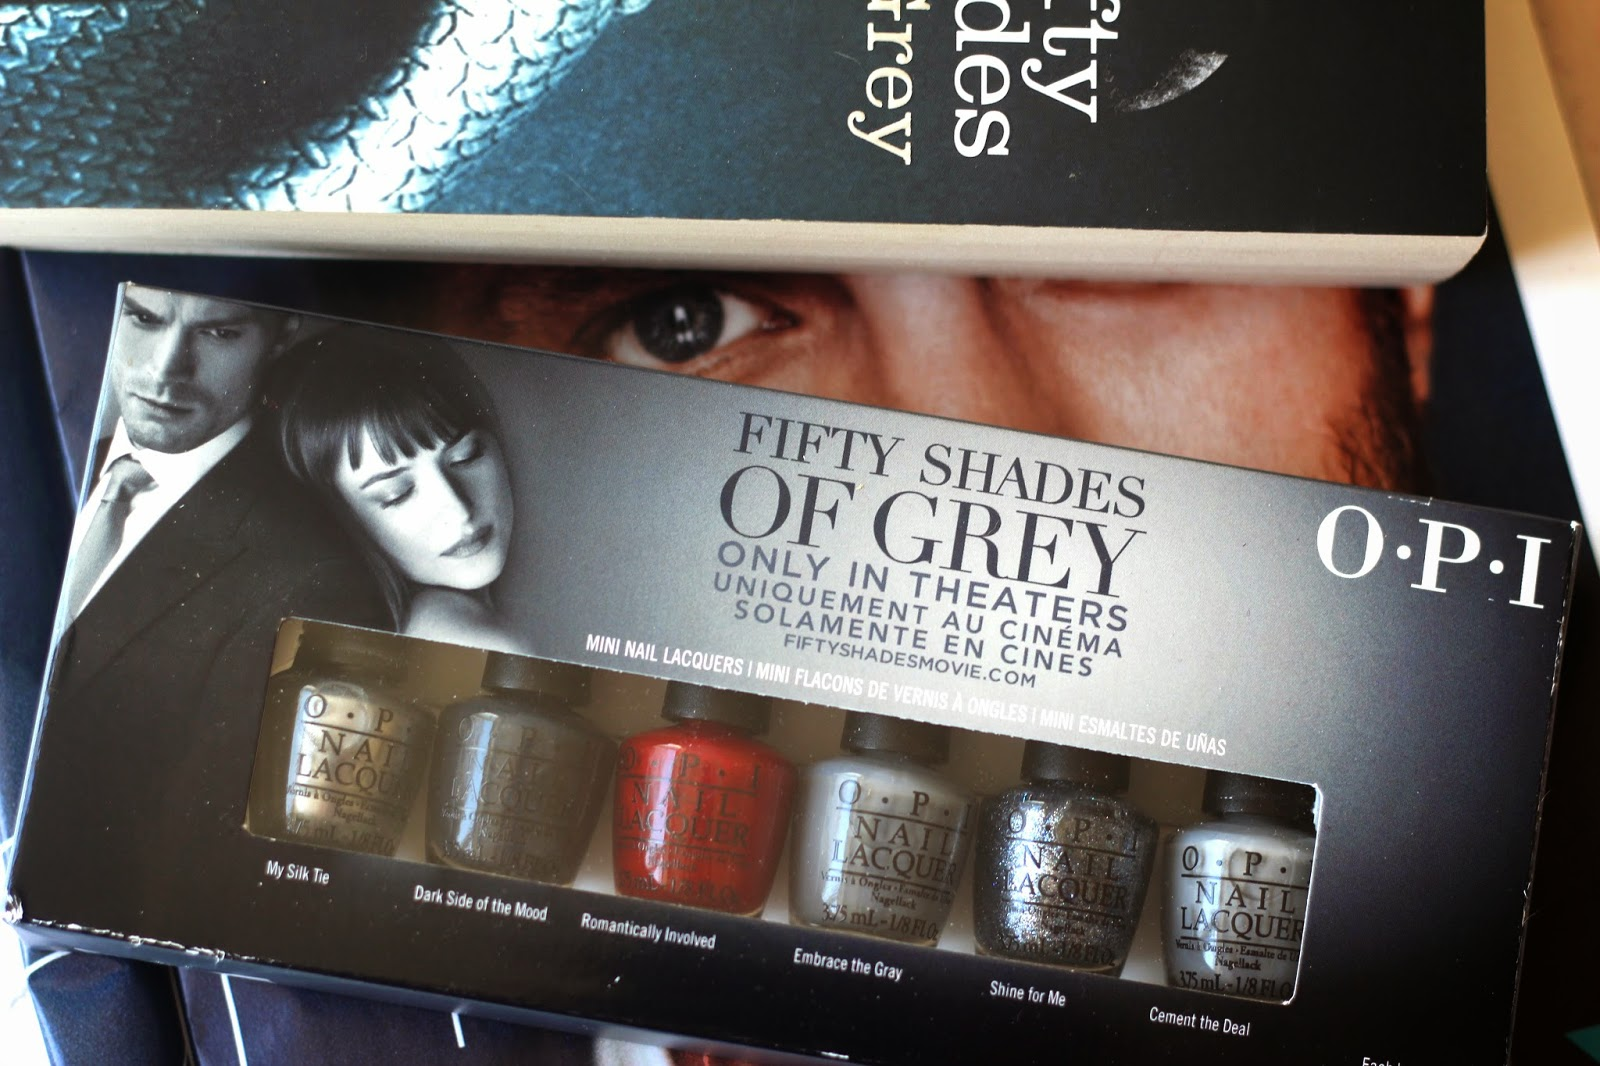 OPI - Fifty Shades of Grey Collection, NOTD, Nail Polish, Review, Blog